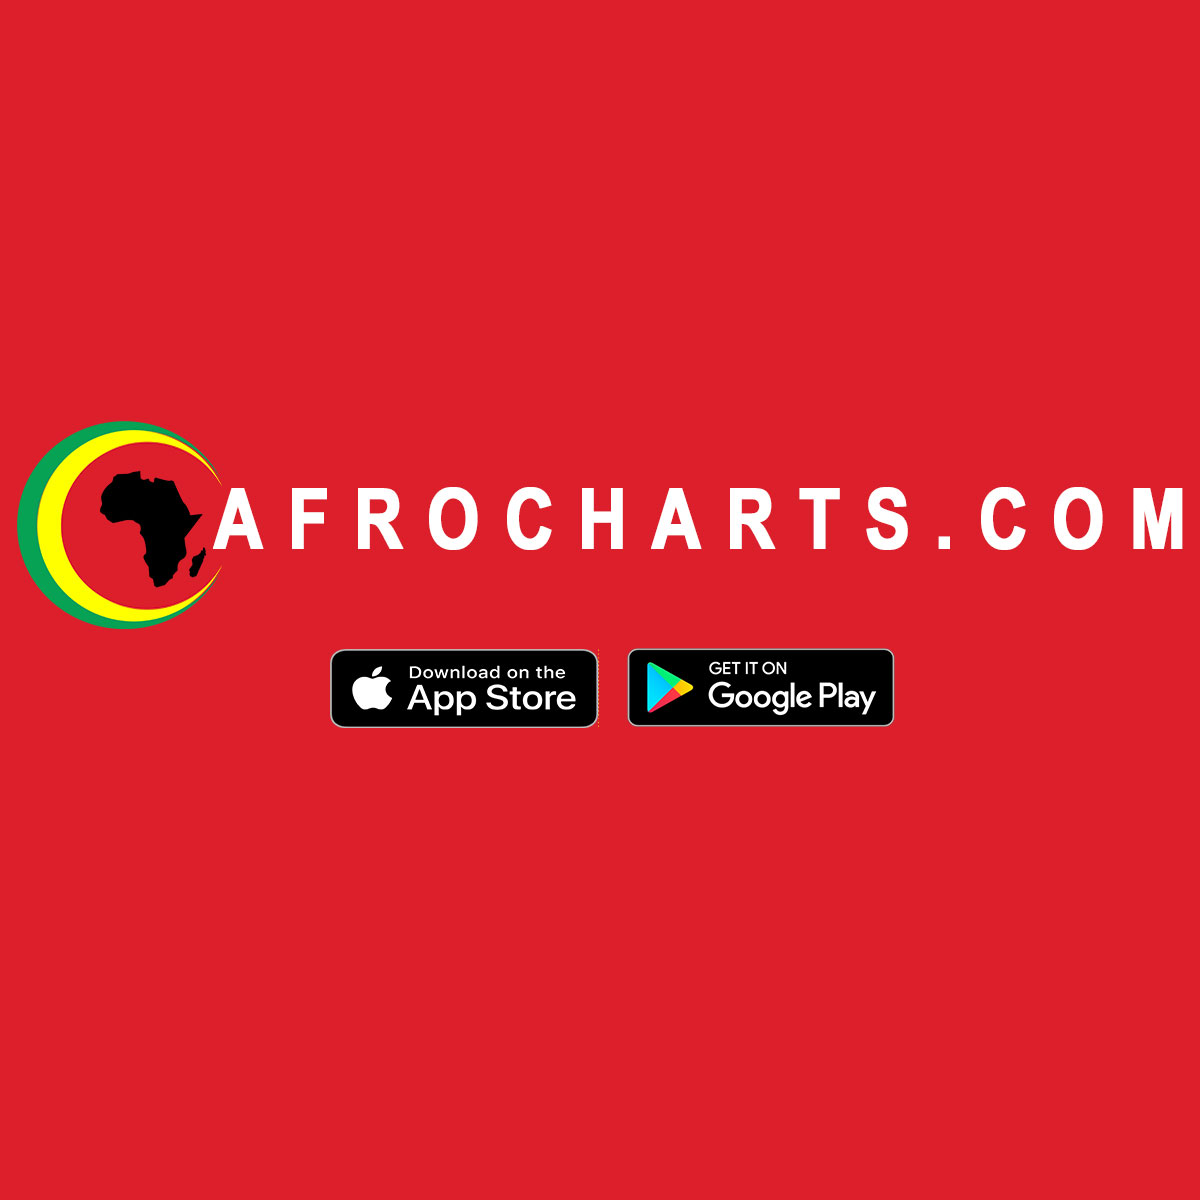 Introducing AfroCharts - the African Music Streaming and Downloading Platform